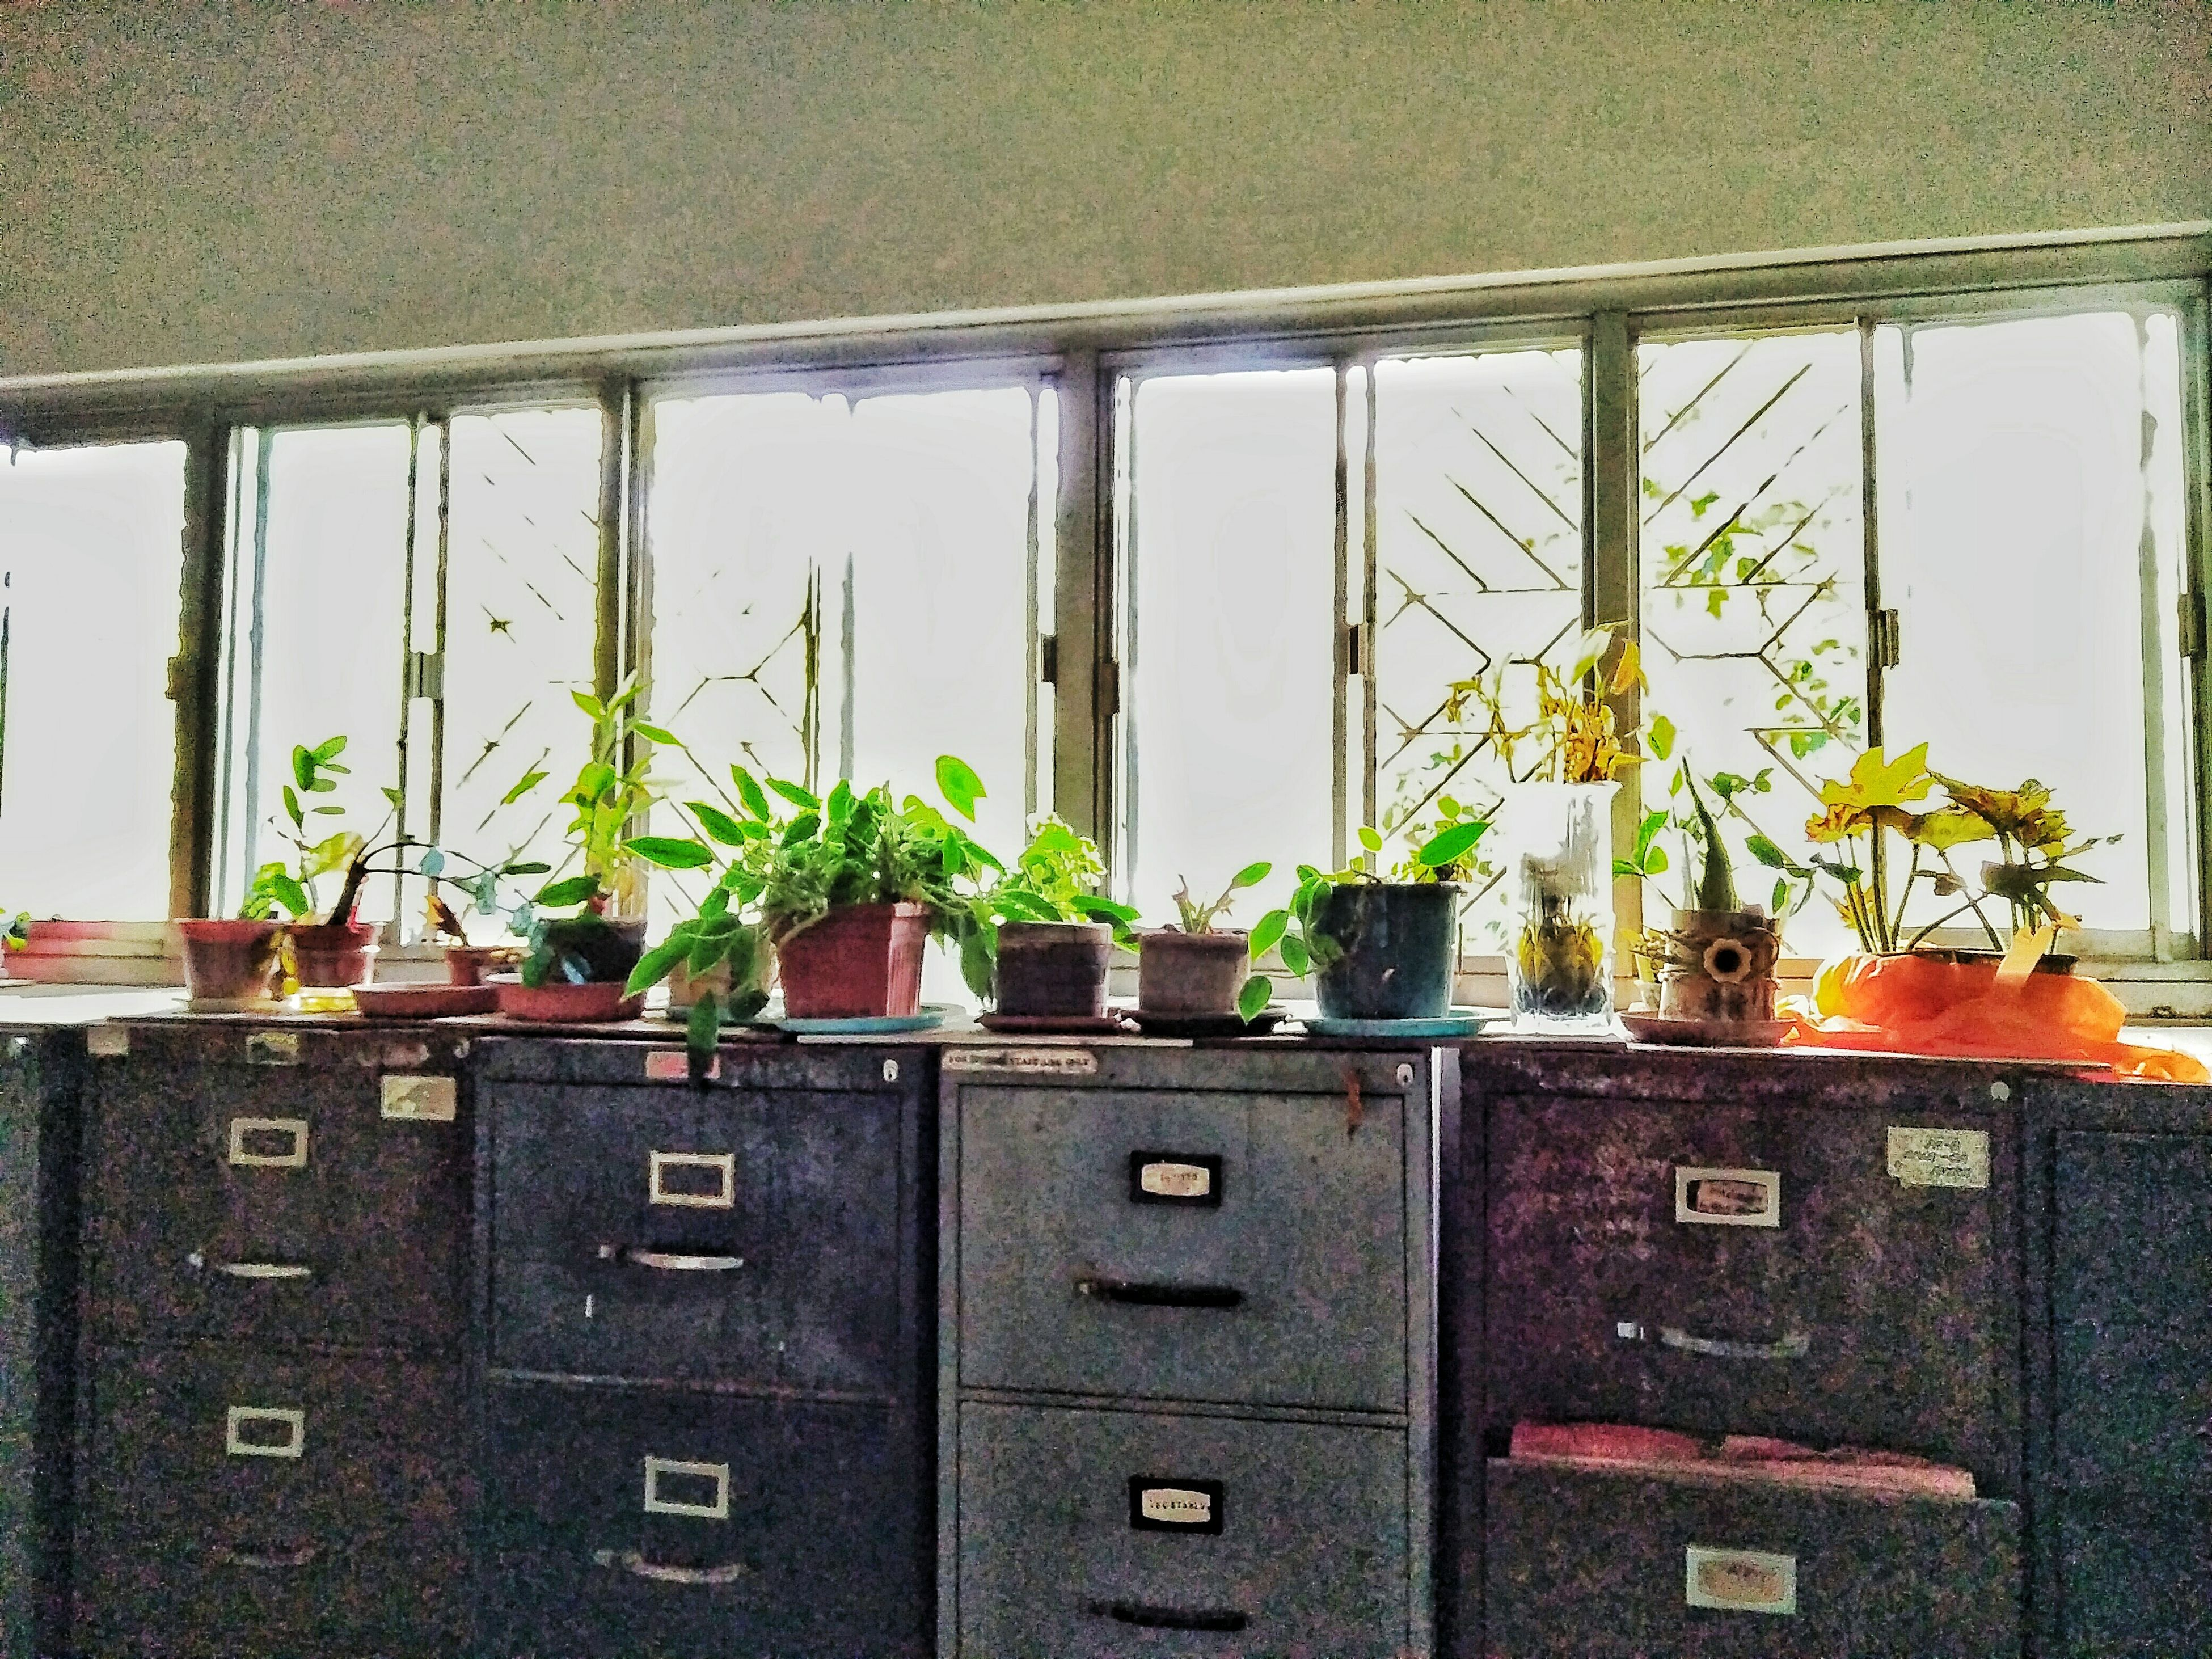 potted plant, window, indoors, growth, plant, geometric shape, day, green color, rectangle, no people, fragility, formal garden